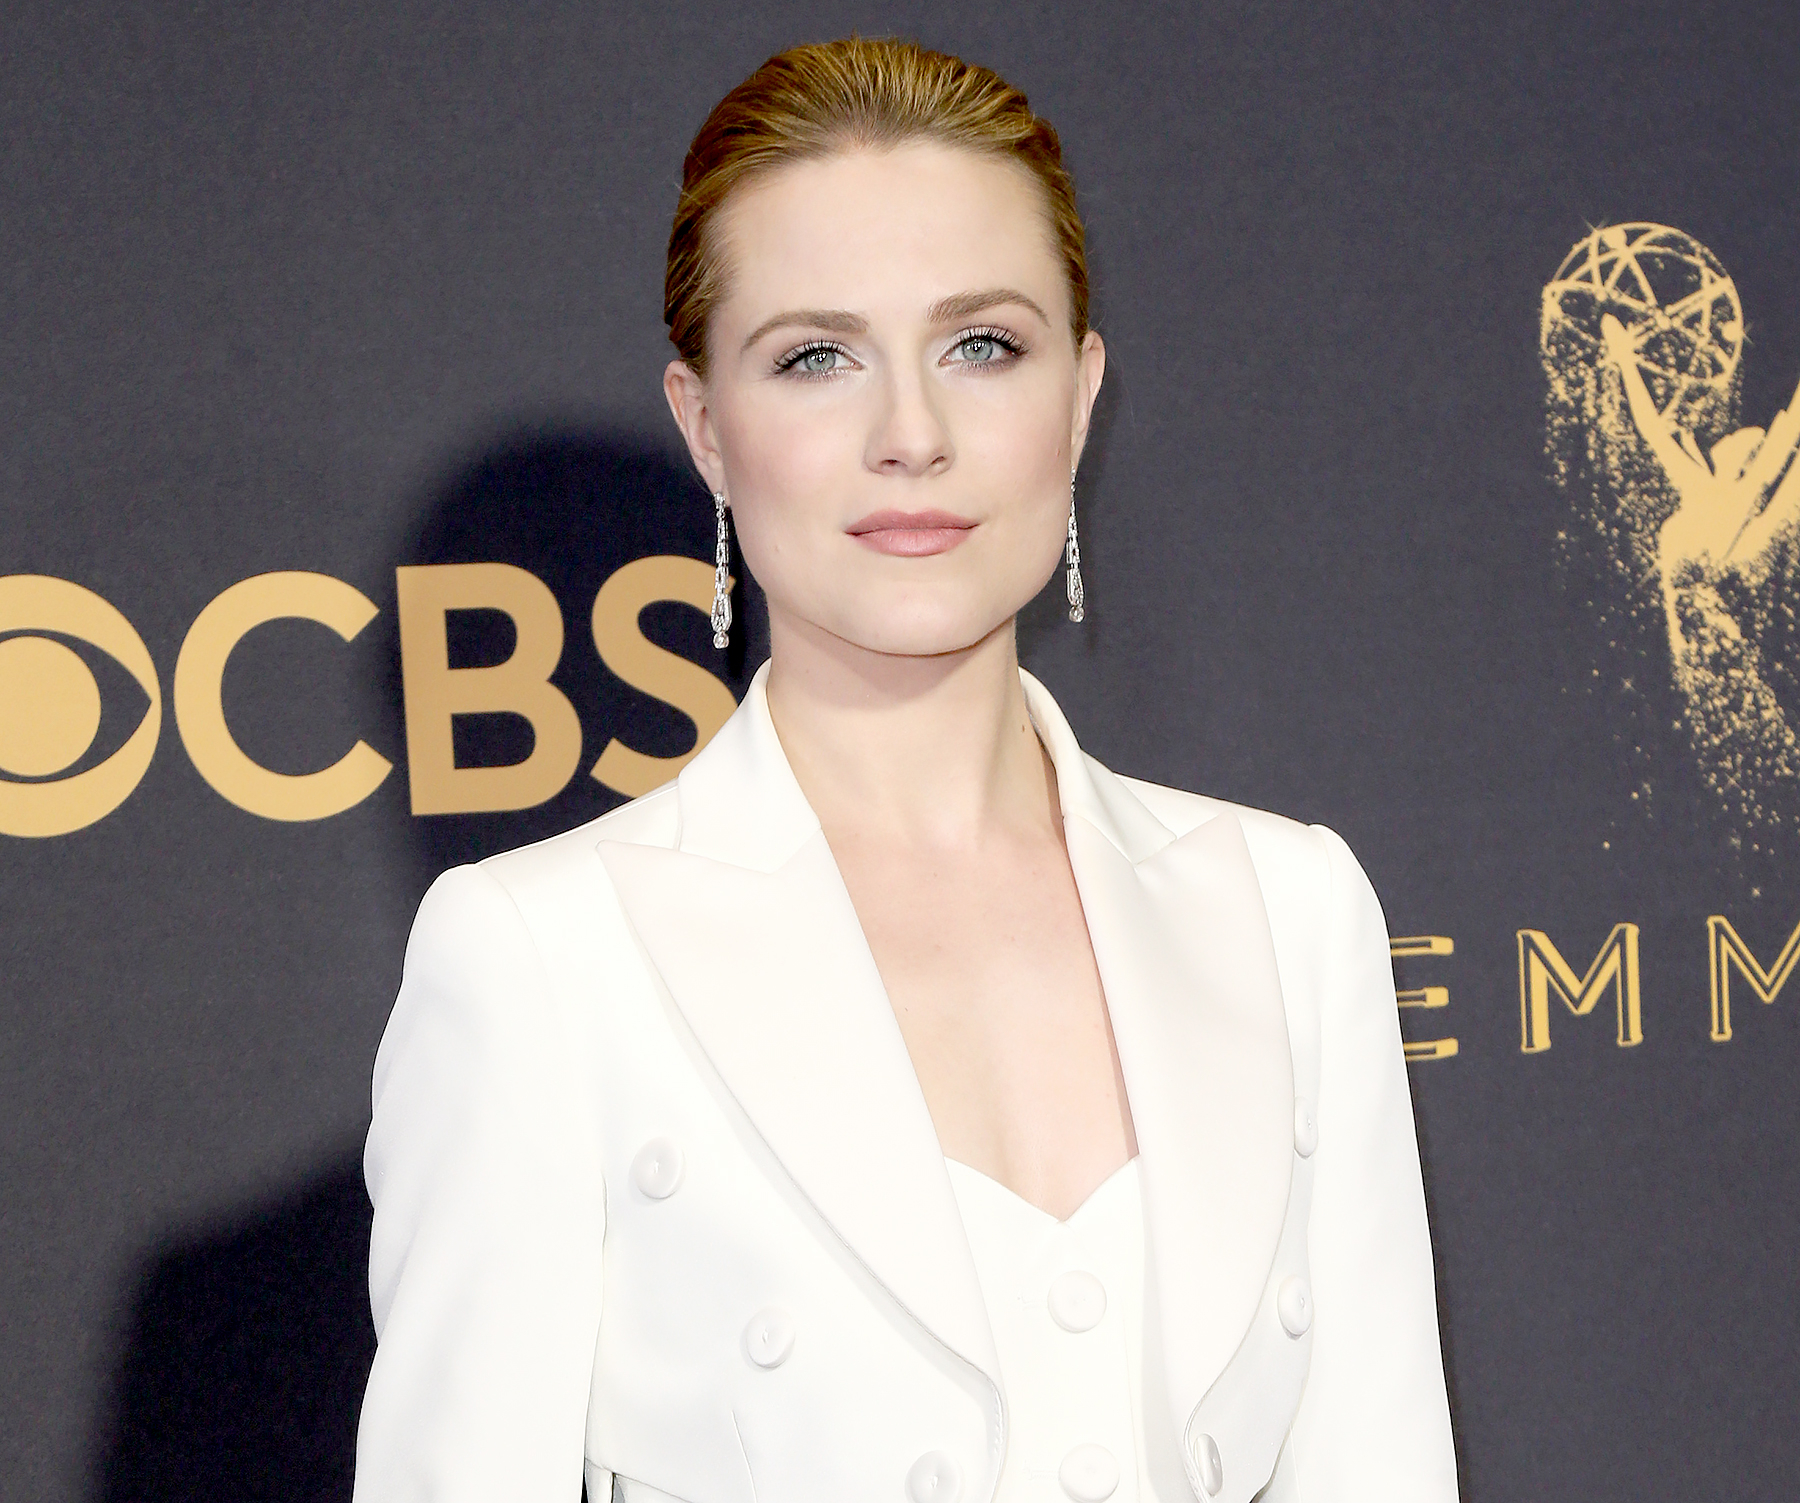 Evan Rachel Wood attends the 69th Annual Primetime Emmy Awards - Arrivals at Microsoft Theater on September 17, 2017 in Los Angeles, California.